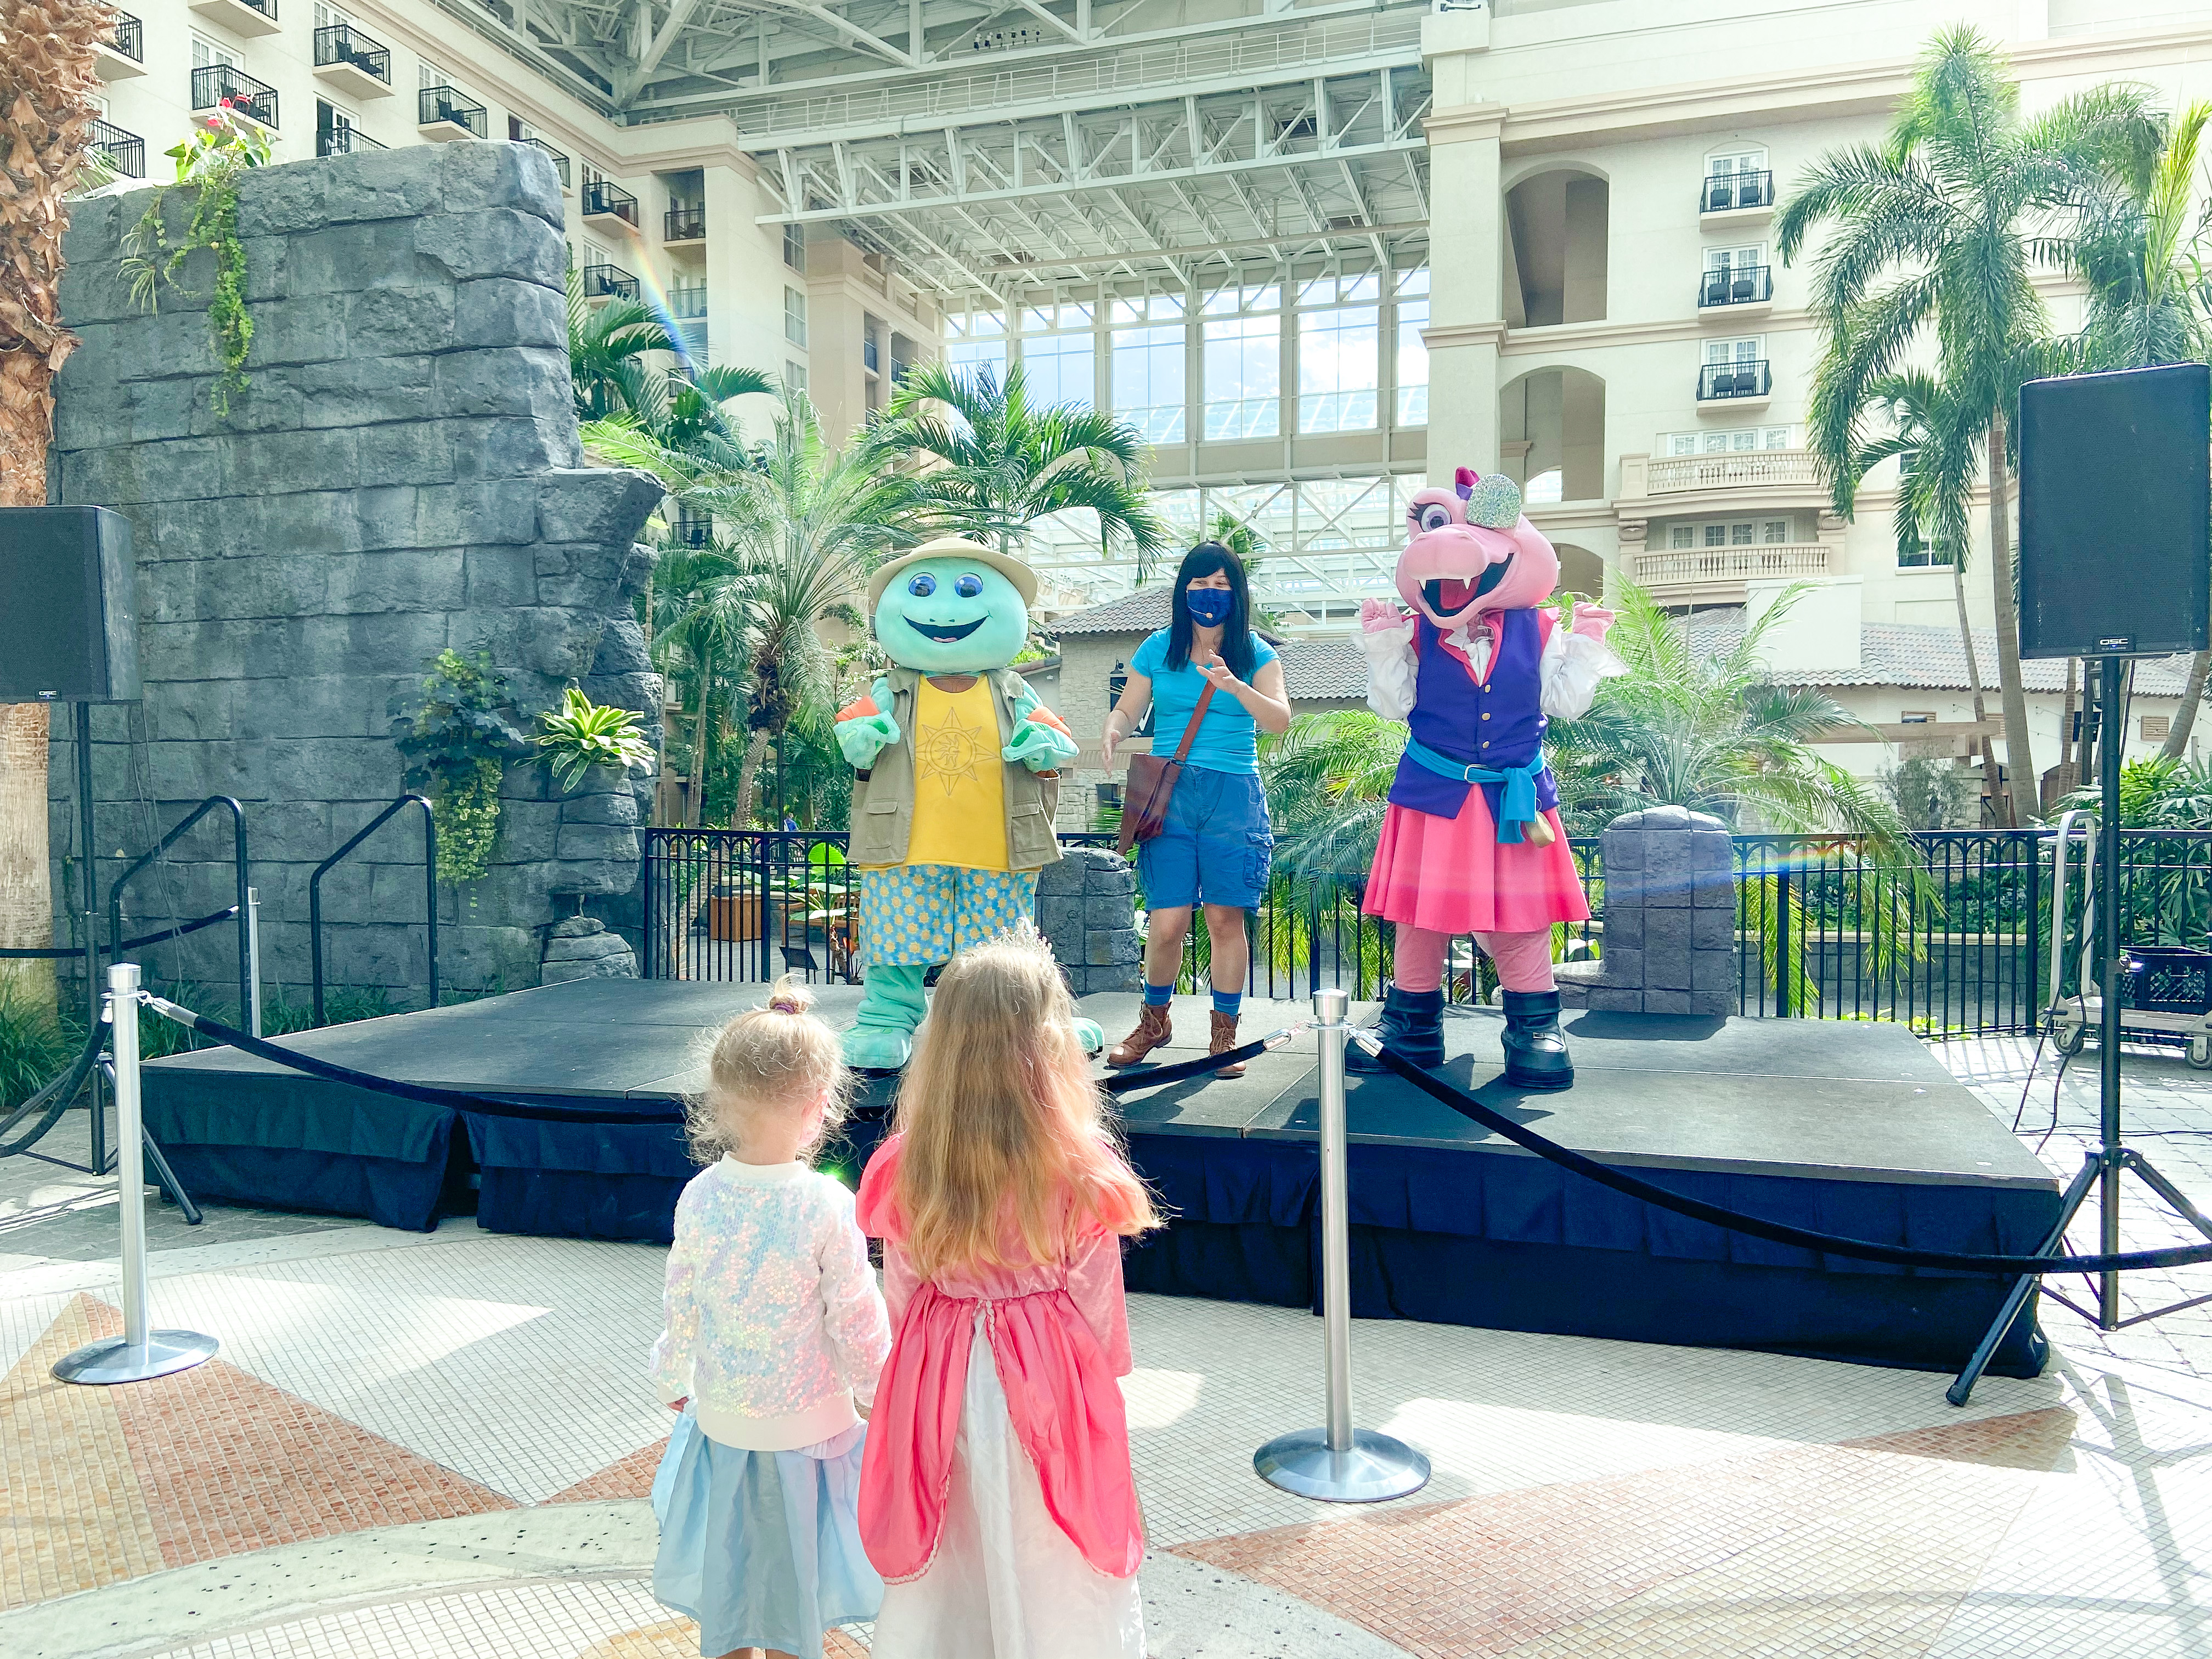 Pirate and Princess Weekendshave officially begun at Gaylord Palms Resort in Orlando, FL. Happening now through March 7, 2021, this immersive experience is lots of fun for guests of all ages. Pirate & Princess Activities at Gaylord Palms Special thanks to Gaylord Palms Resort for hosting my family and inviting us to experience Pirate and Princess Weekends. All opinions are my own. Pirate Pool Party Happening Saturdays and Sundays from 12-4 pm at Cypress Springs Water Park, this party includes lots of fun pirate themed music and is complimentary for all resort guests. Gaylord Palms has two large pools for swimming, plus a water park with various play areas for kids of all ages to enjoy. Treasure Scavenger Hunt Orangeblossom's Shiny Stash Treasure Hunt happens resort-wide at your leisure. The treasure chests are (mostly) easy to spot and carefully hidden around the St Augustine Atrium. Booklets are available for purchase for $9.99 at the Pool Towel Hut and also come with a fun prize upon completion. Adventure Kids: Join the Club Happening Saturdays at 12 pm, 1 pm and 2 pm, you can meet Seth the turtle and Ava the alligator as they earn their Goodness Badge and talk about the importance of making good choices. Kids even have the opportunity to talk to the characters and pose for a photo at the end of each show. While also adhering to social distancing guidelines. We watched the show once from our balcony and again up close. My girls loved it! The Princess Academy Happening on Saturdays at 1:30pm, 2:30 pm and 3:30 pm, The Princess Academy is a fun, interactive show with singing, sword fighting and also beautiful princesses. Princess Orangeblossom meets the swashbuckling Pirate Princess Sunshine and teaches her how to be a proper princess. Pirate Outpost Invasion This all-new immersive show happens Fridays and Saturdays and puts you right into the pirate action! The three part experience includes songs, sword fighting, and a chance to meet the pirate captain to join his 